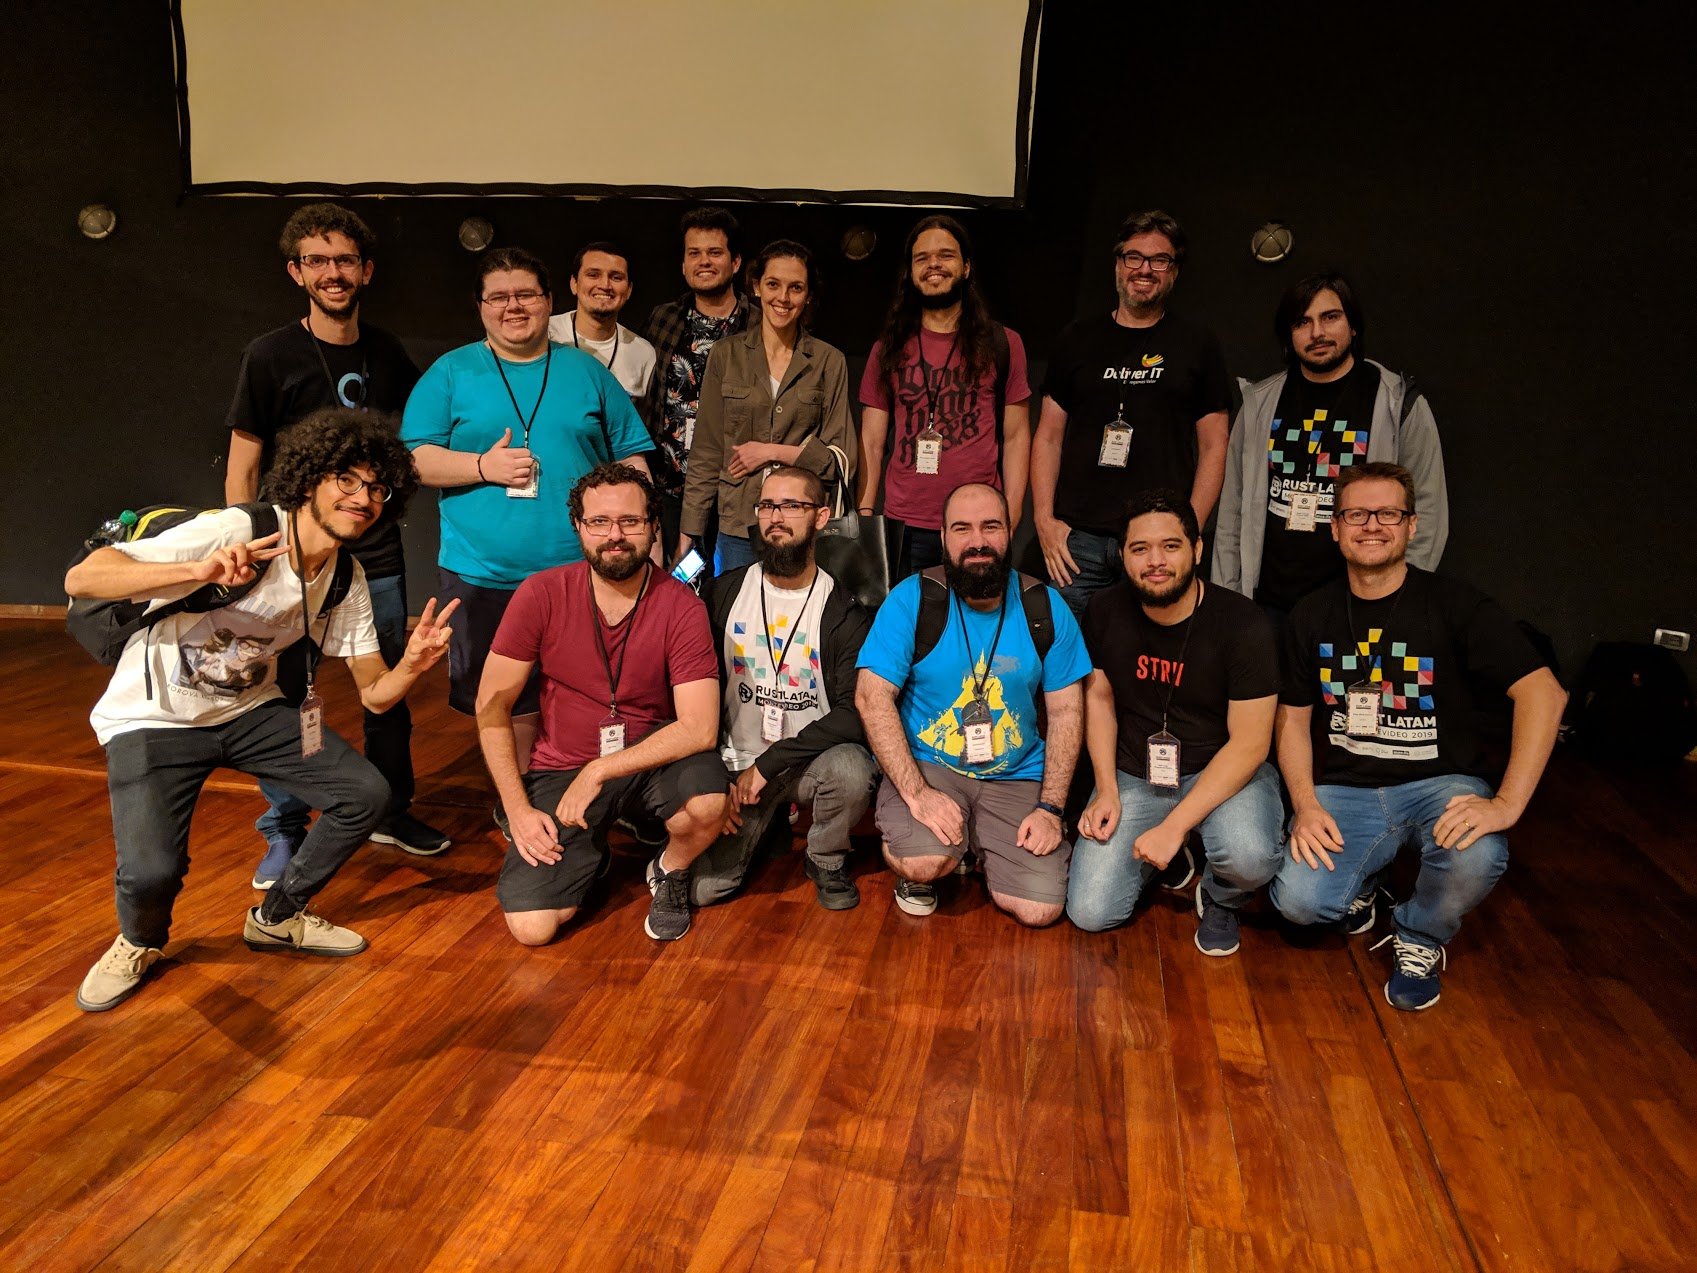 All brazilians on stage after the conference in a unofficial picture